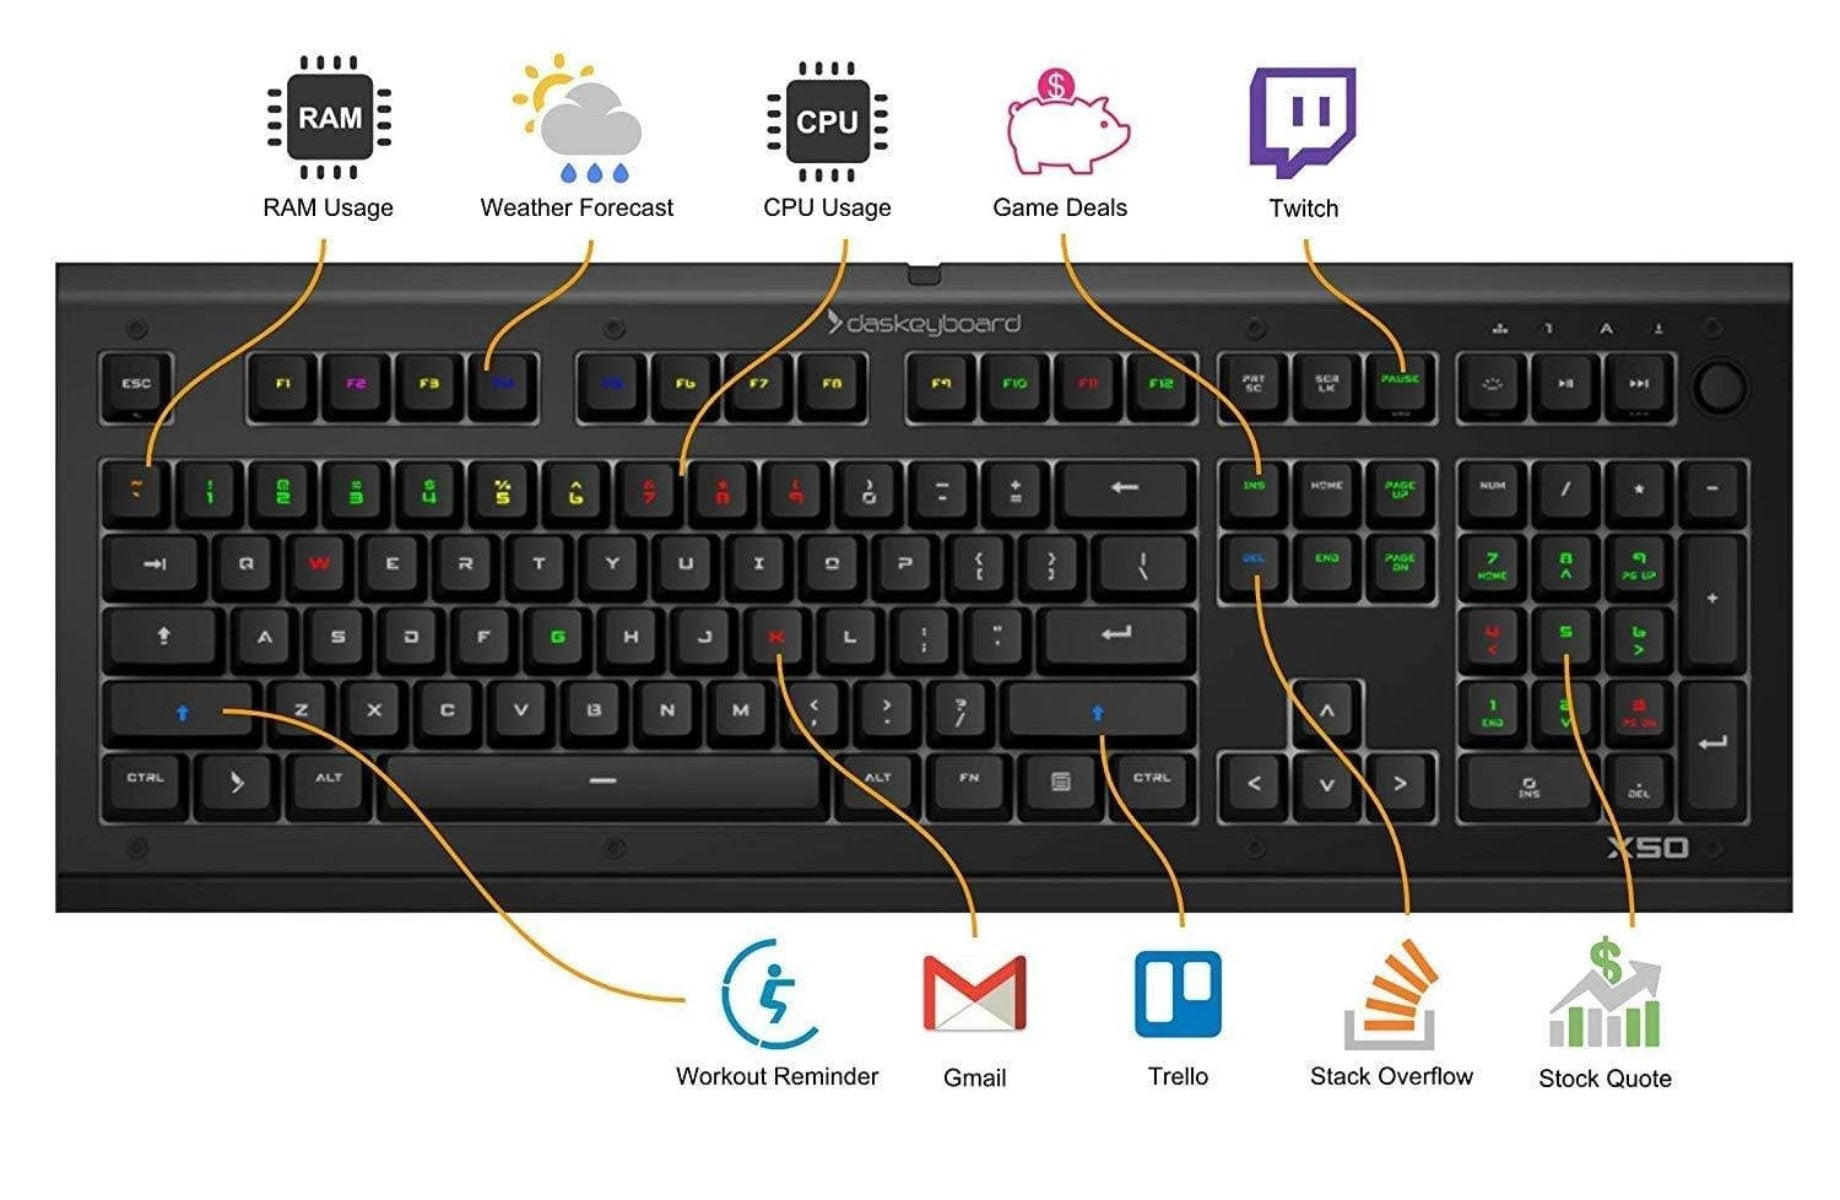 Das Keyboard Keyboard Das Keyboard X50Q: World's First Smart Mechanical Keyboard for Work & Gaming - RGB, Soft Tactile